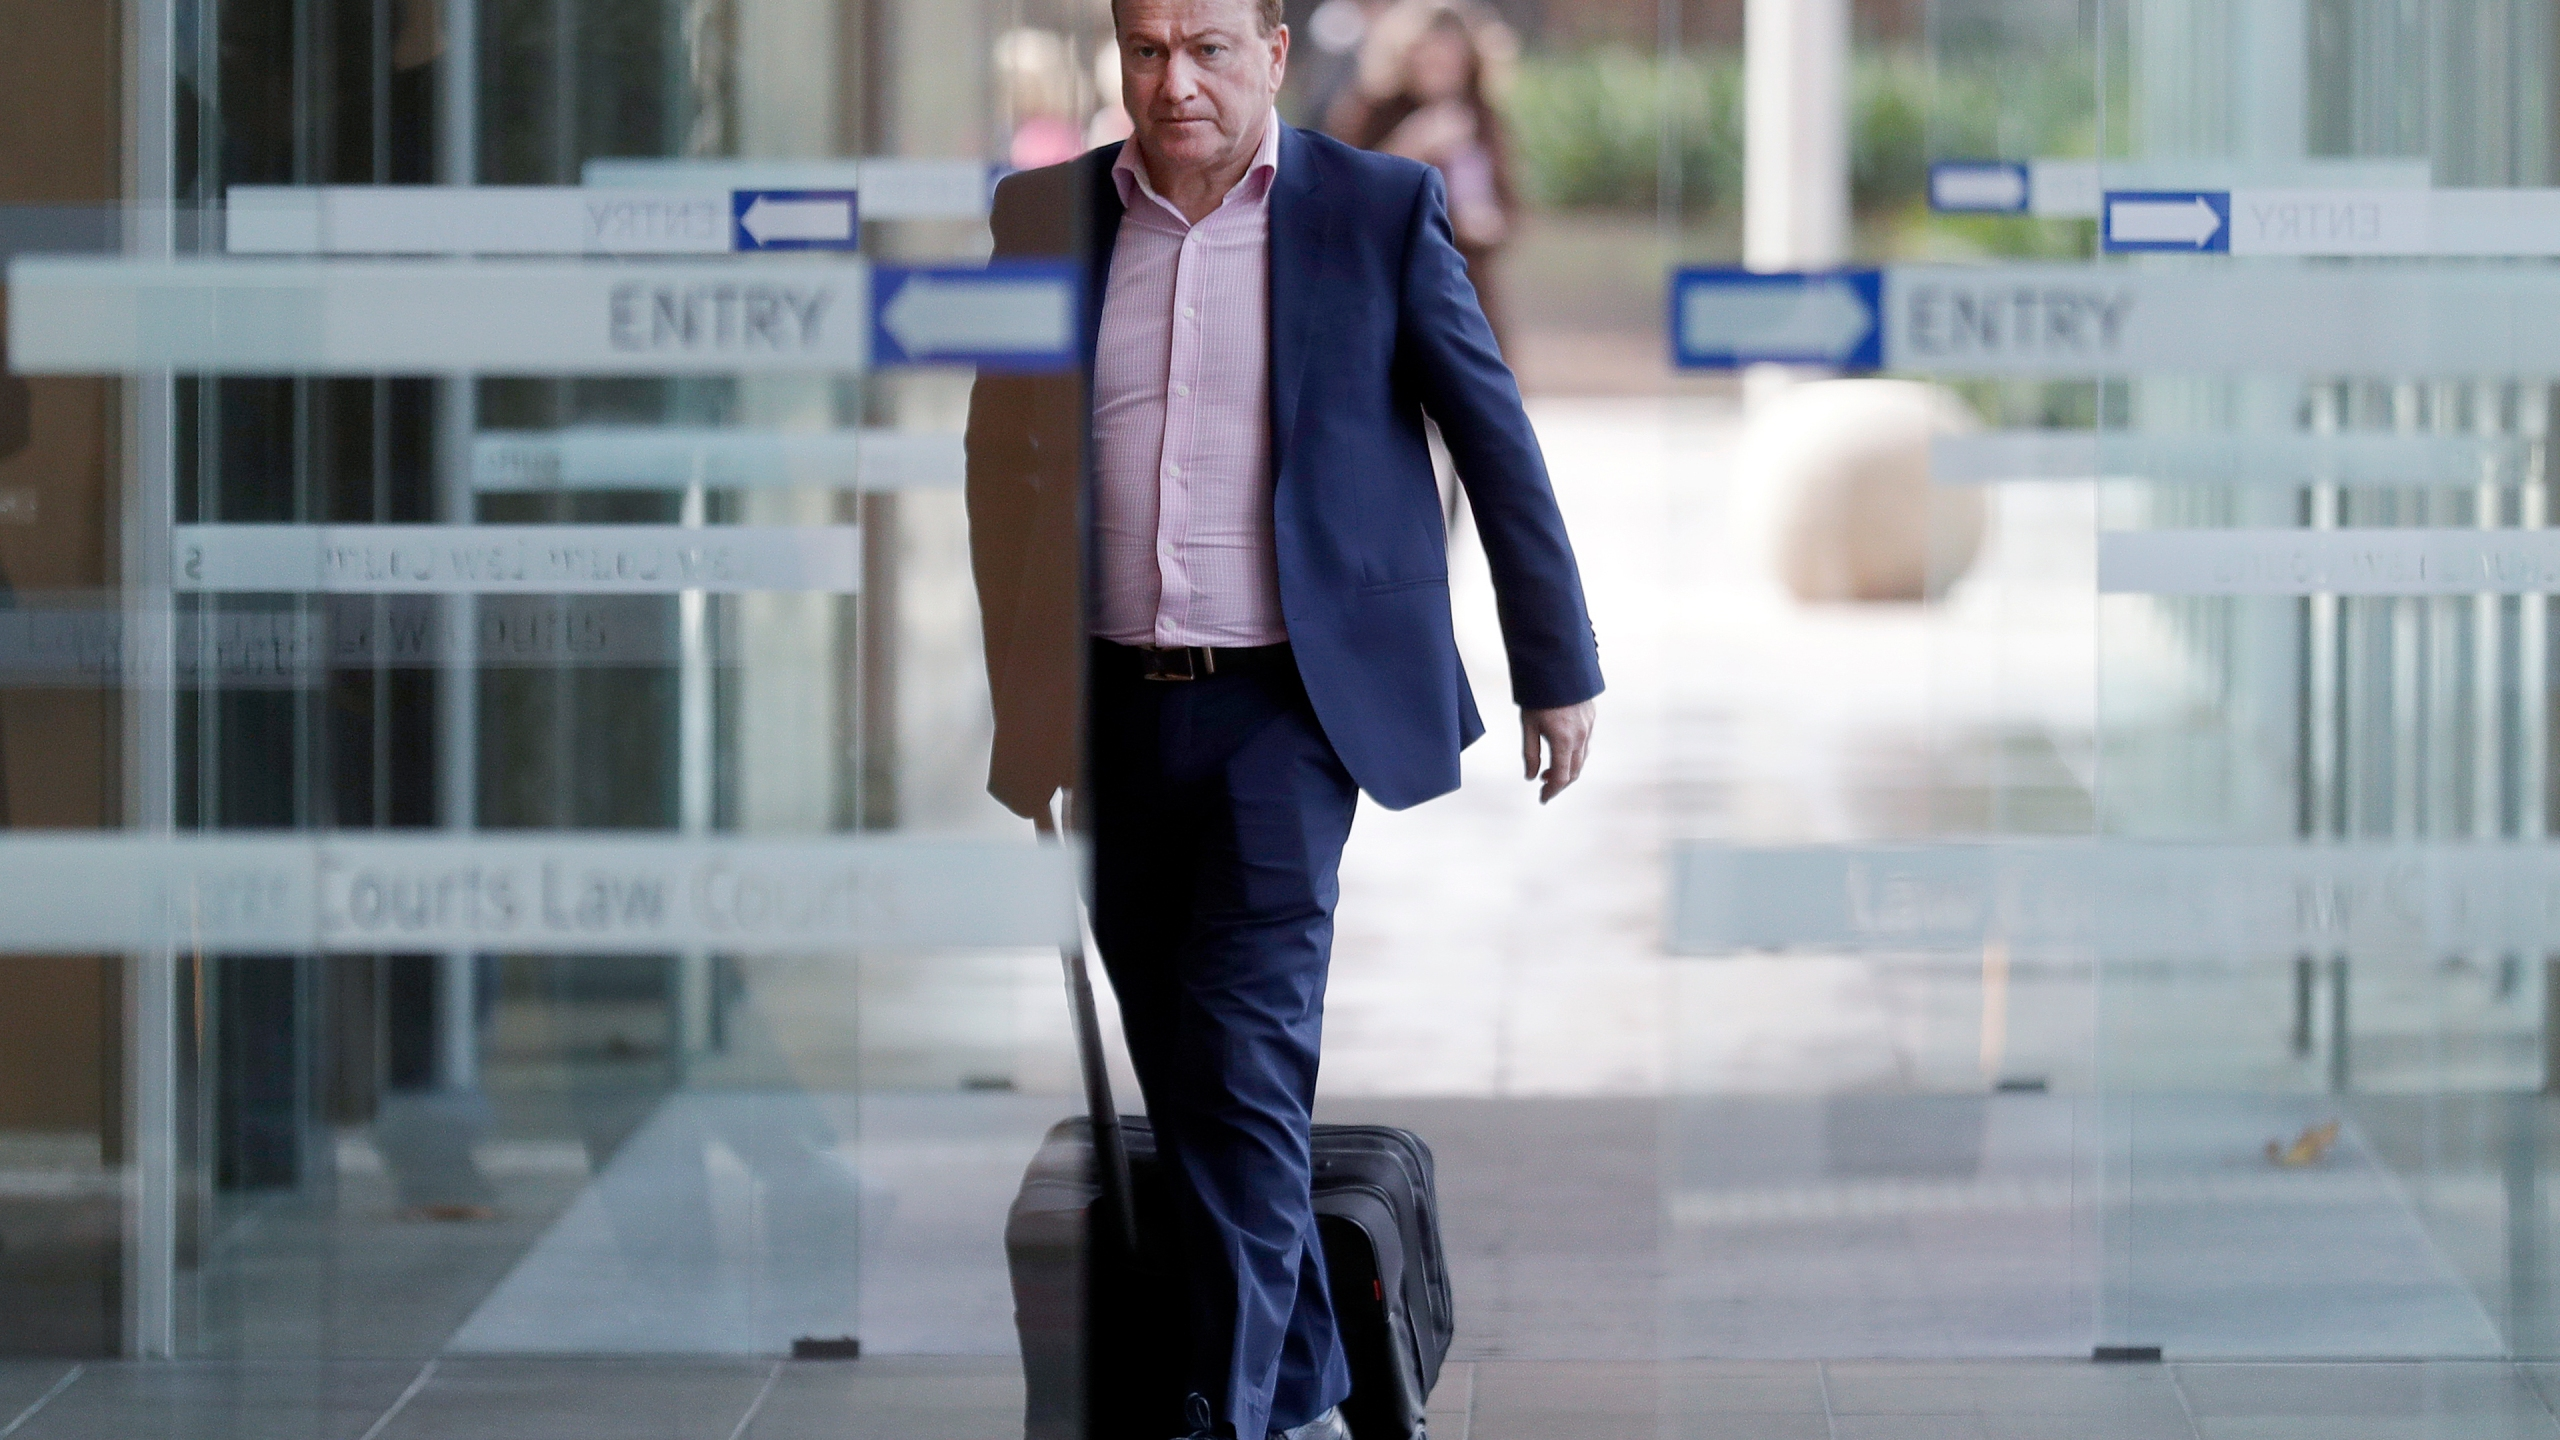 In this May 6, 2021, file photo, Andrew Cooper, founder and president of libertarian group LibertyWorks, arrives at Federal Court in Sydney. (AP Photo/Rick Rycroft, File)